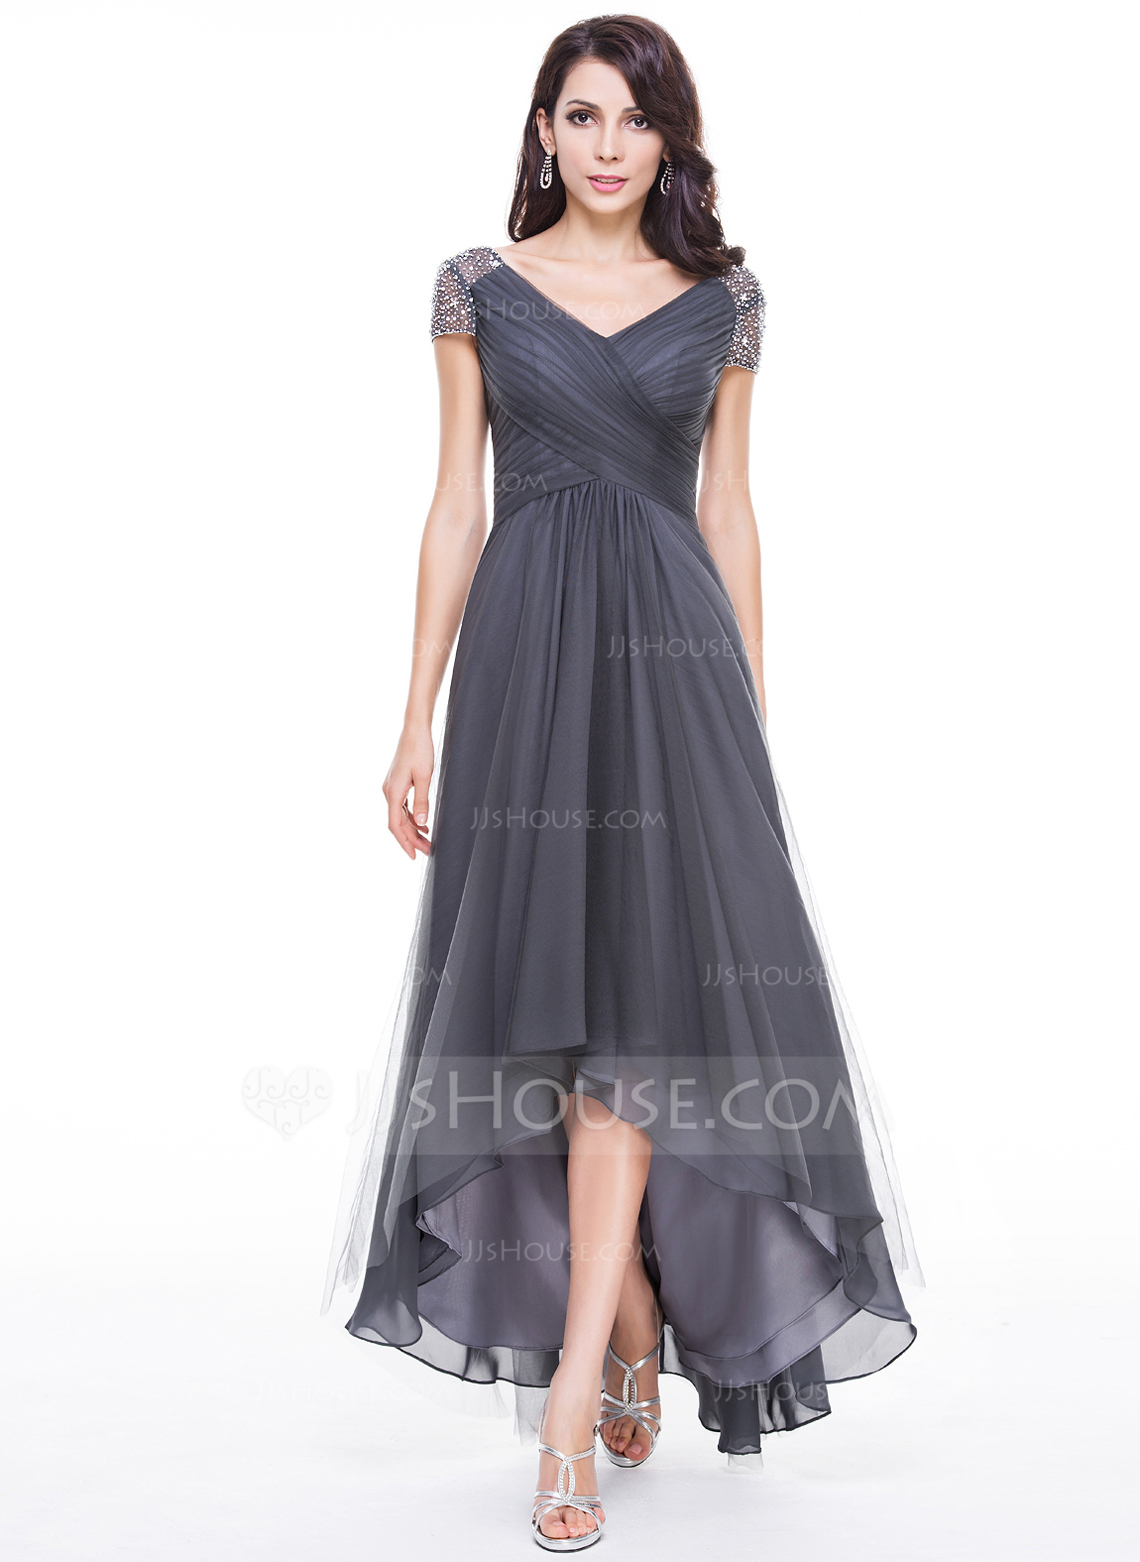 jjshouse.com evening dresses photo - 1